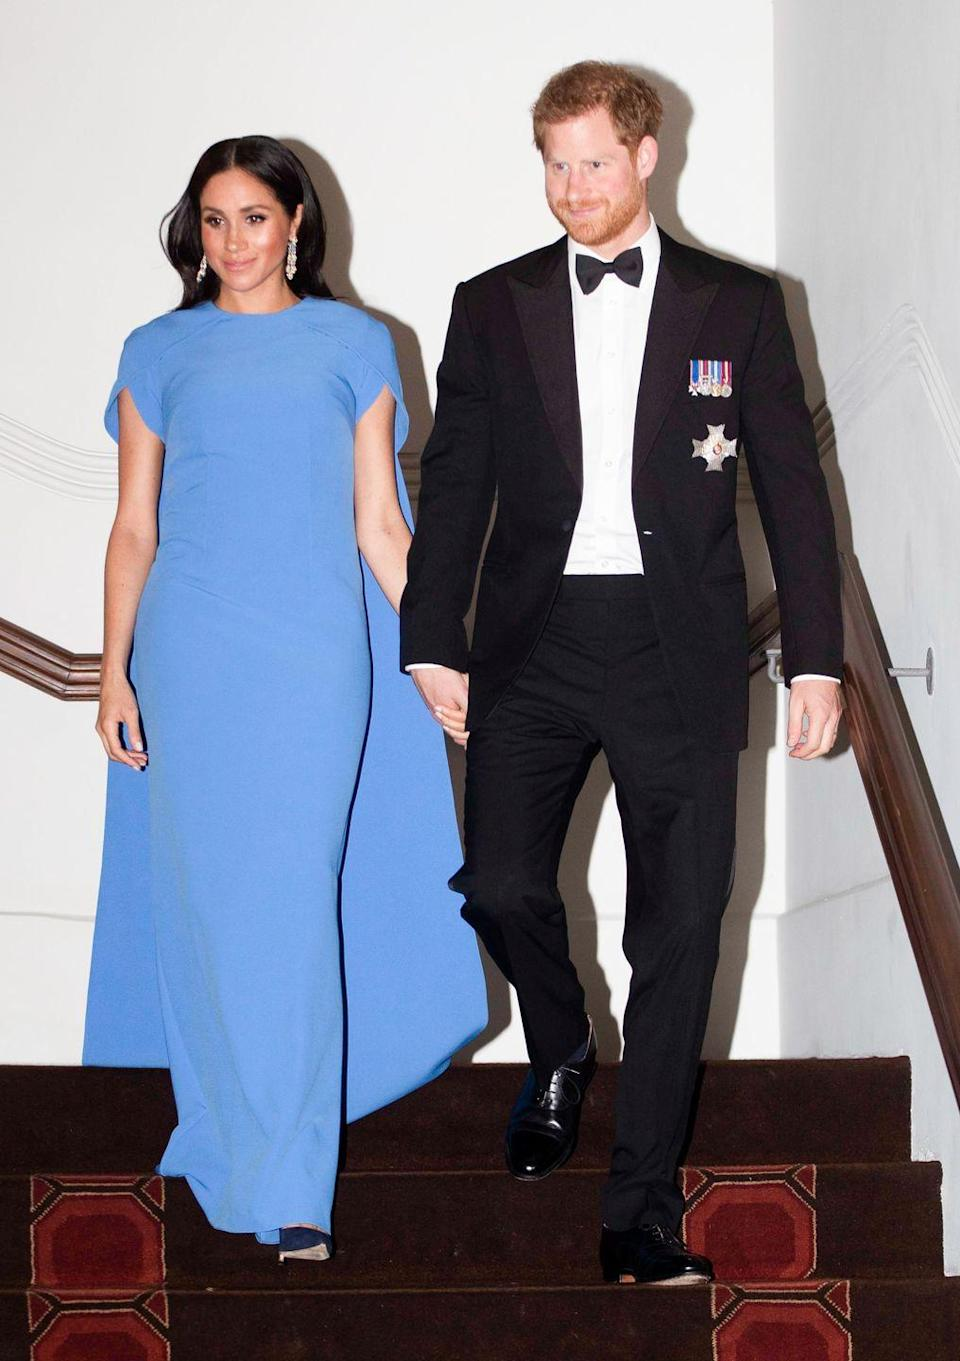 <p>Meghan clearly loves a Safiyaa cape dress. She chose this powder blue option for a 2018 state dinner in Suva, Fiji. The Duchess let the blue hue take center stage, pairing the dress with dangling earrings and a loose, wavy hairstyle. </p>